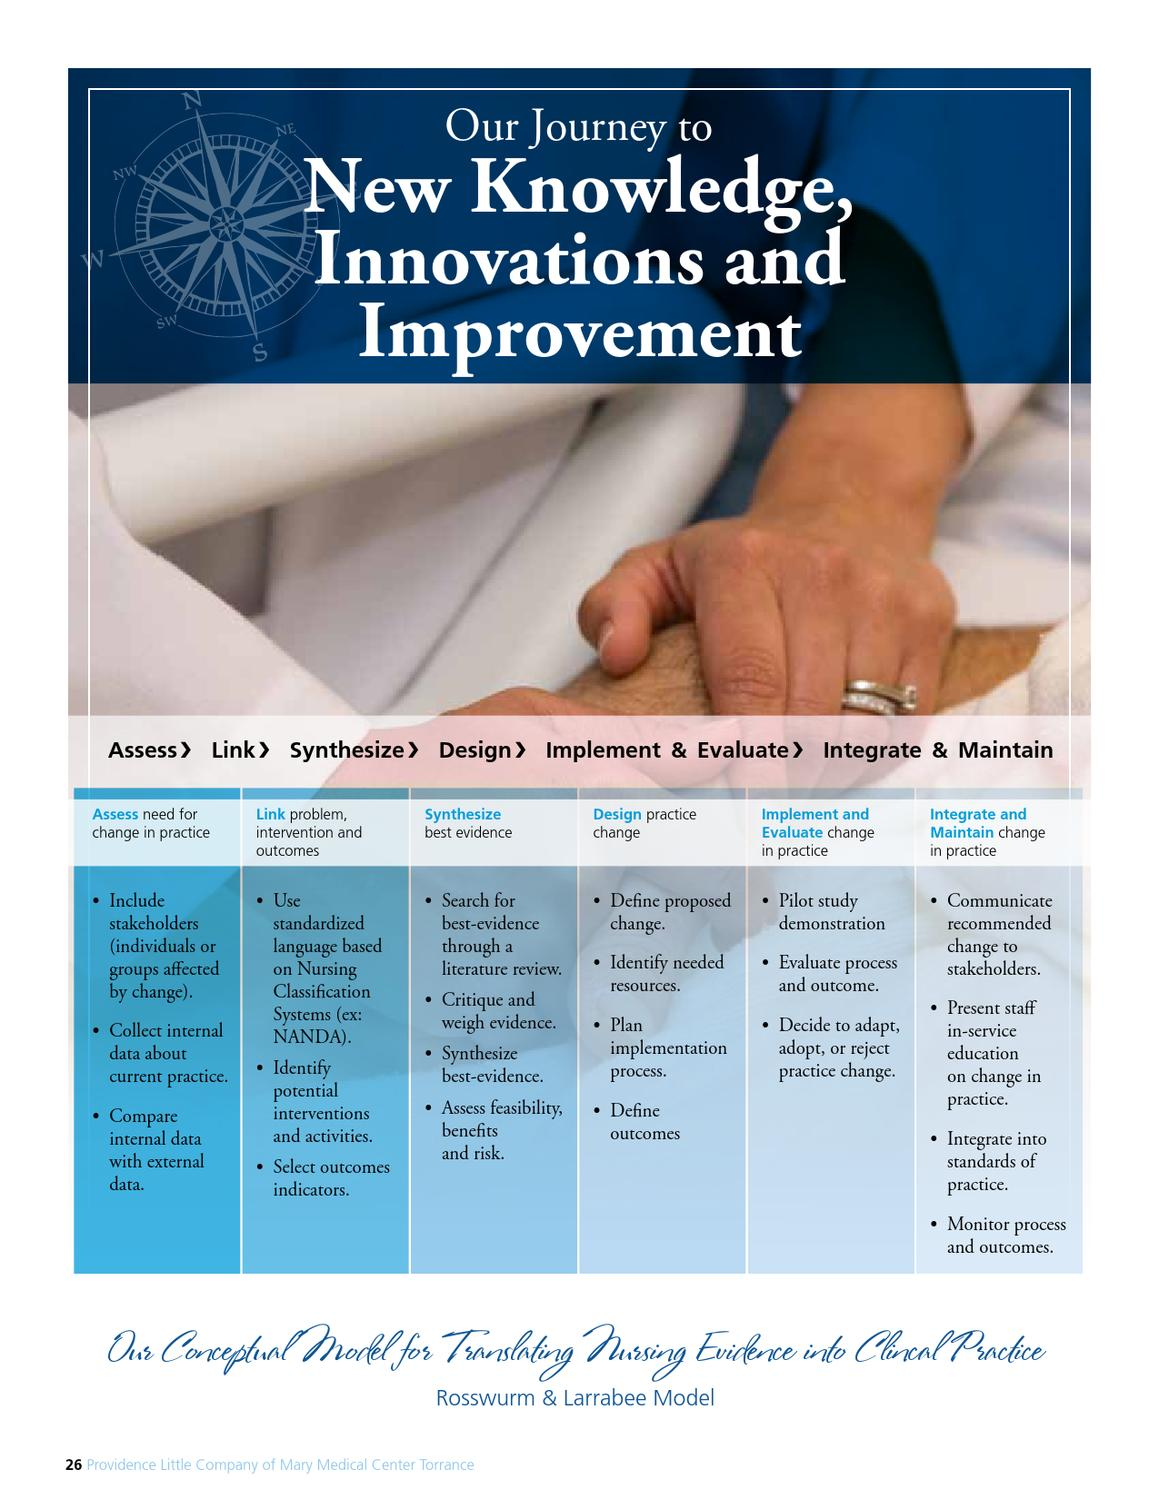 rosswurm and larrabee model for change Overview on evidence based nursing nursing essay will be helpful to promote the change process this model (rosswurm and larrabee, 2005) this model is.